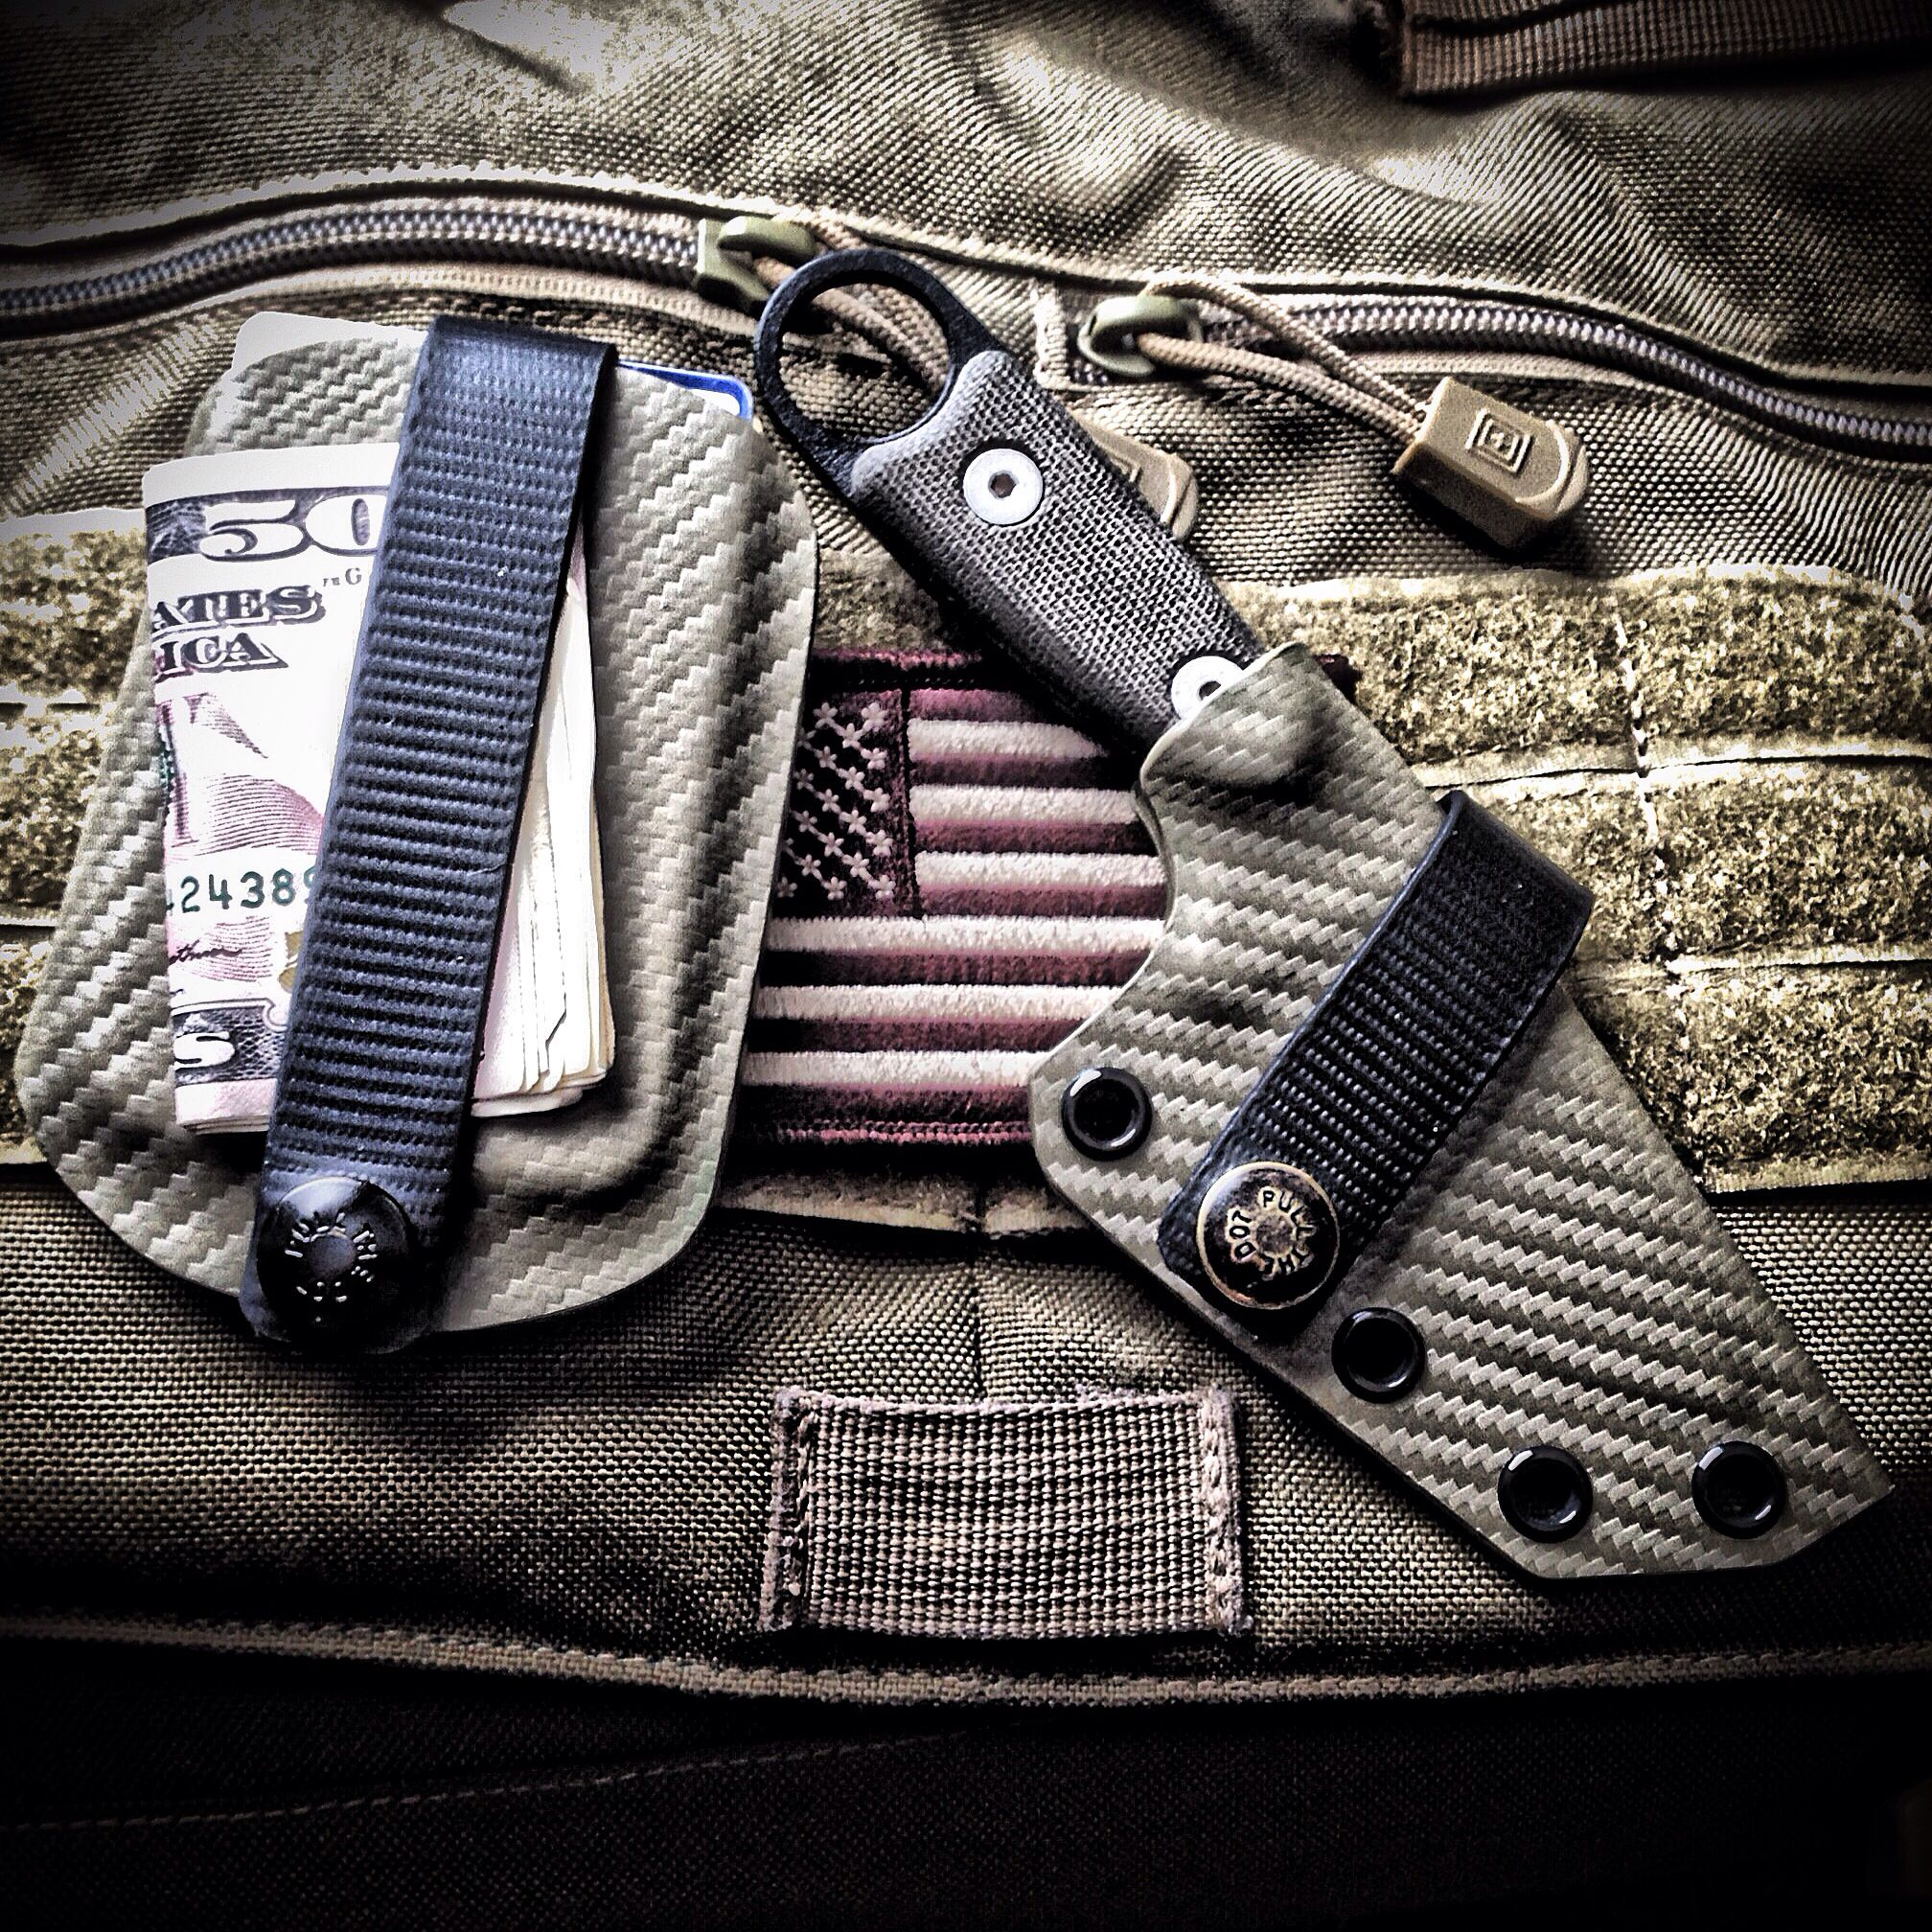 Vita EDC Wallet And Custom ESEE Izula Sheath By Armatus